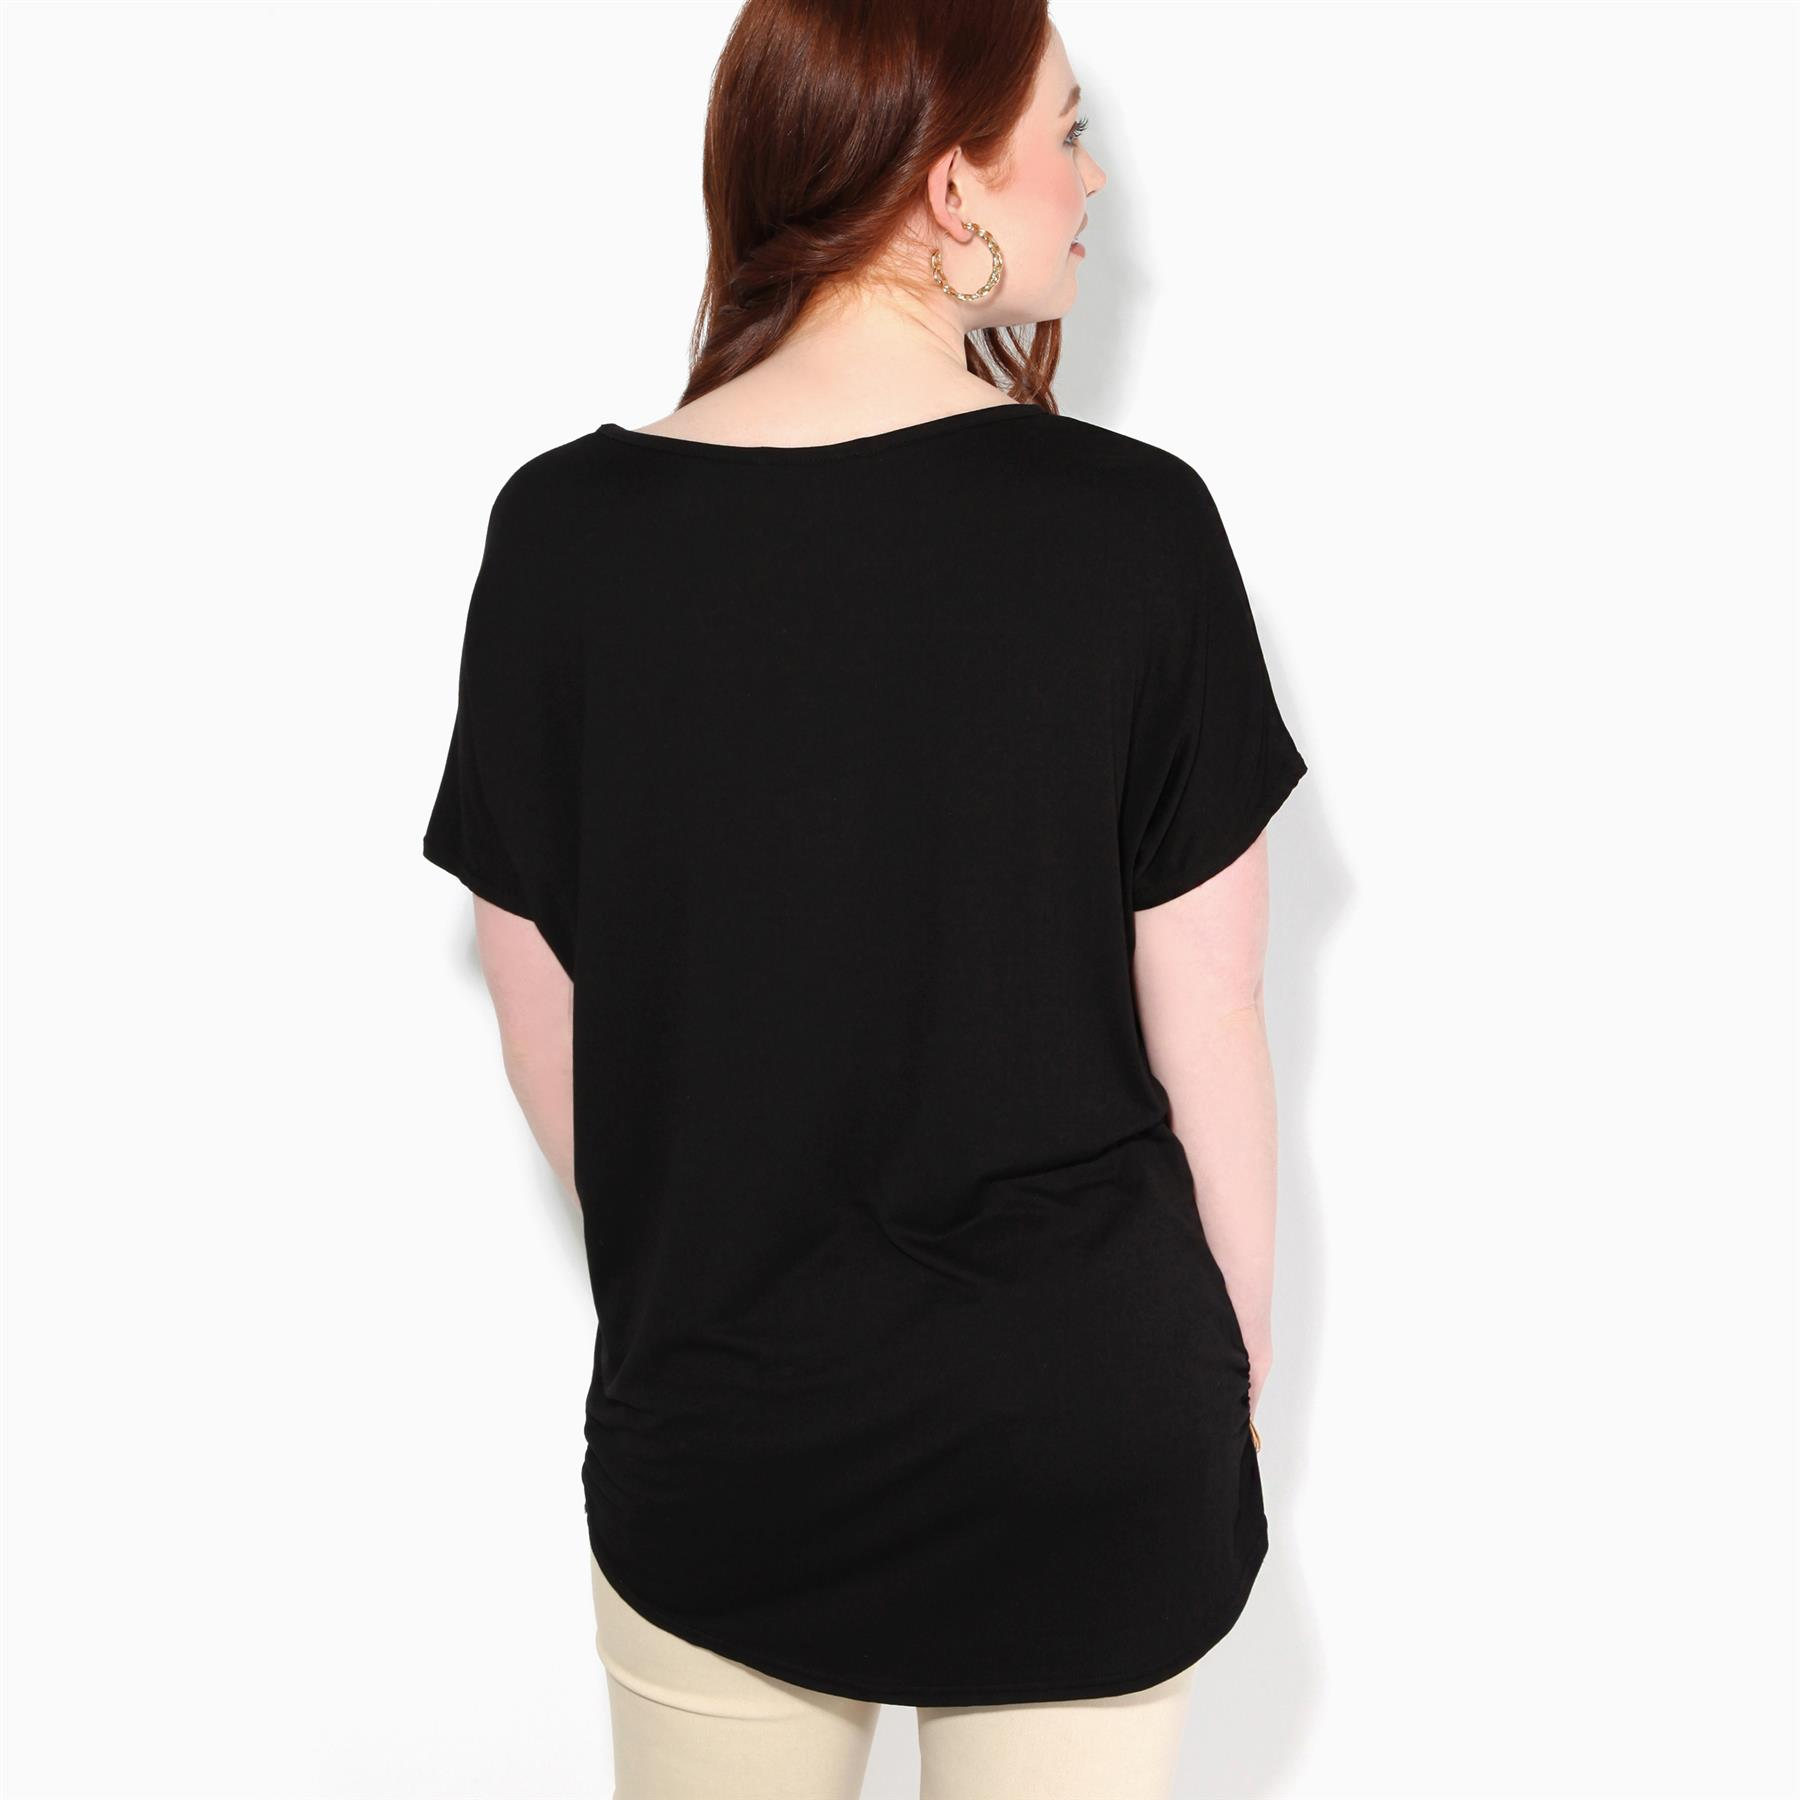 Womens-Loose-Batwing-T-Shirt-Ladies-Animal-Tunic-Blouse-Oversized-Long-Line-Top thumbnail 3